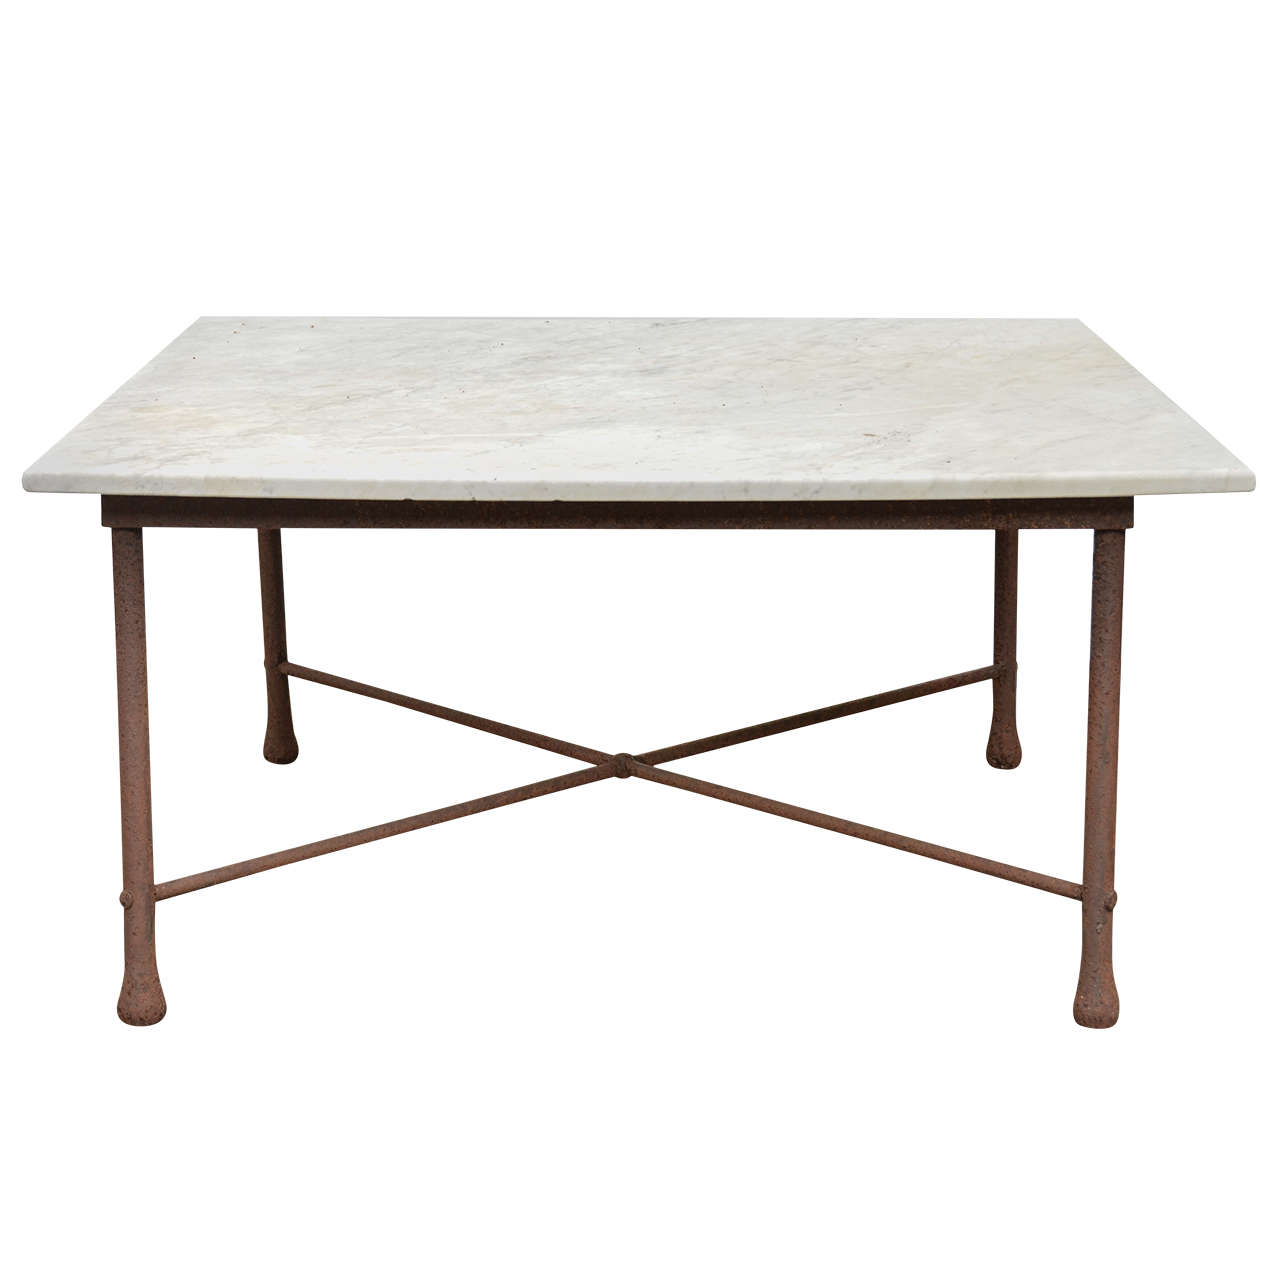 American 1970s Wrought Iron Coffee Table With Marble Top 1